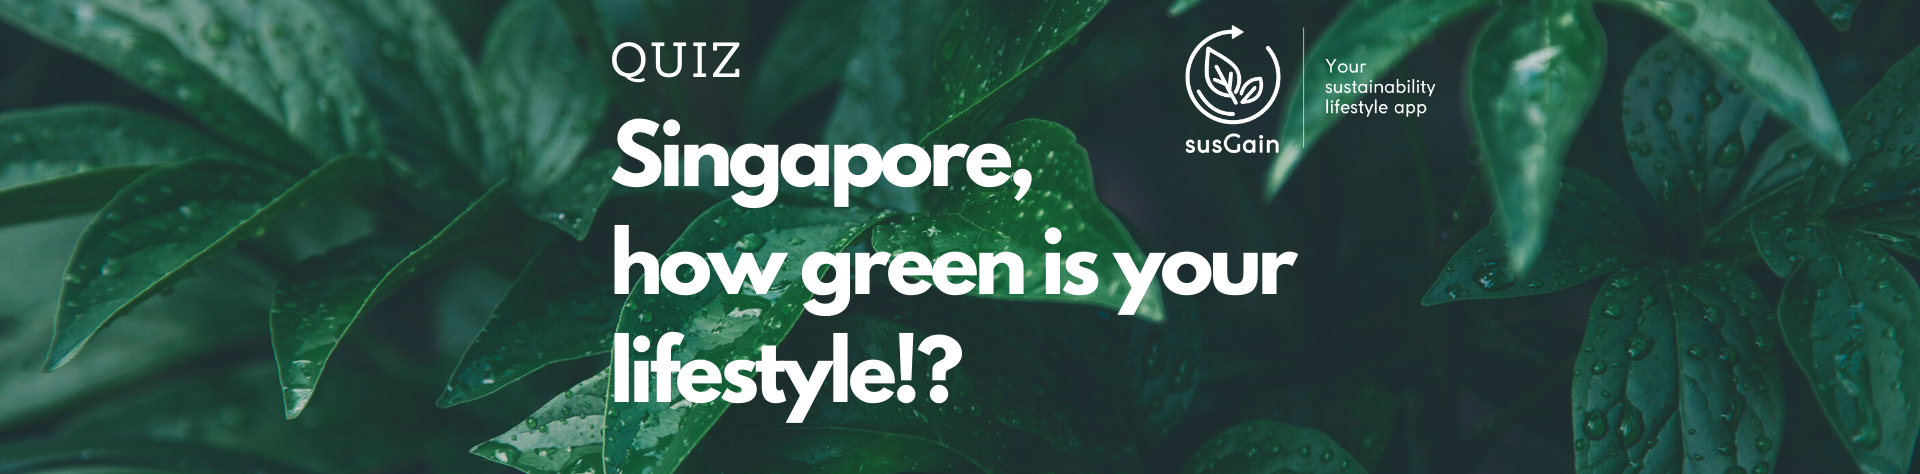 https://www.susgain.com/wp-content/uploads/2020/04/Blog-banner-Singapore-how-green-is-your-lifestyle_-2.png